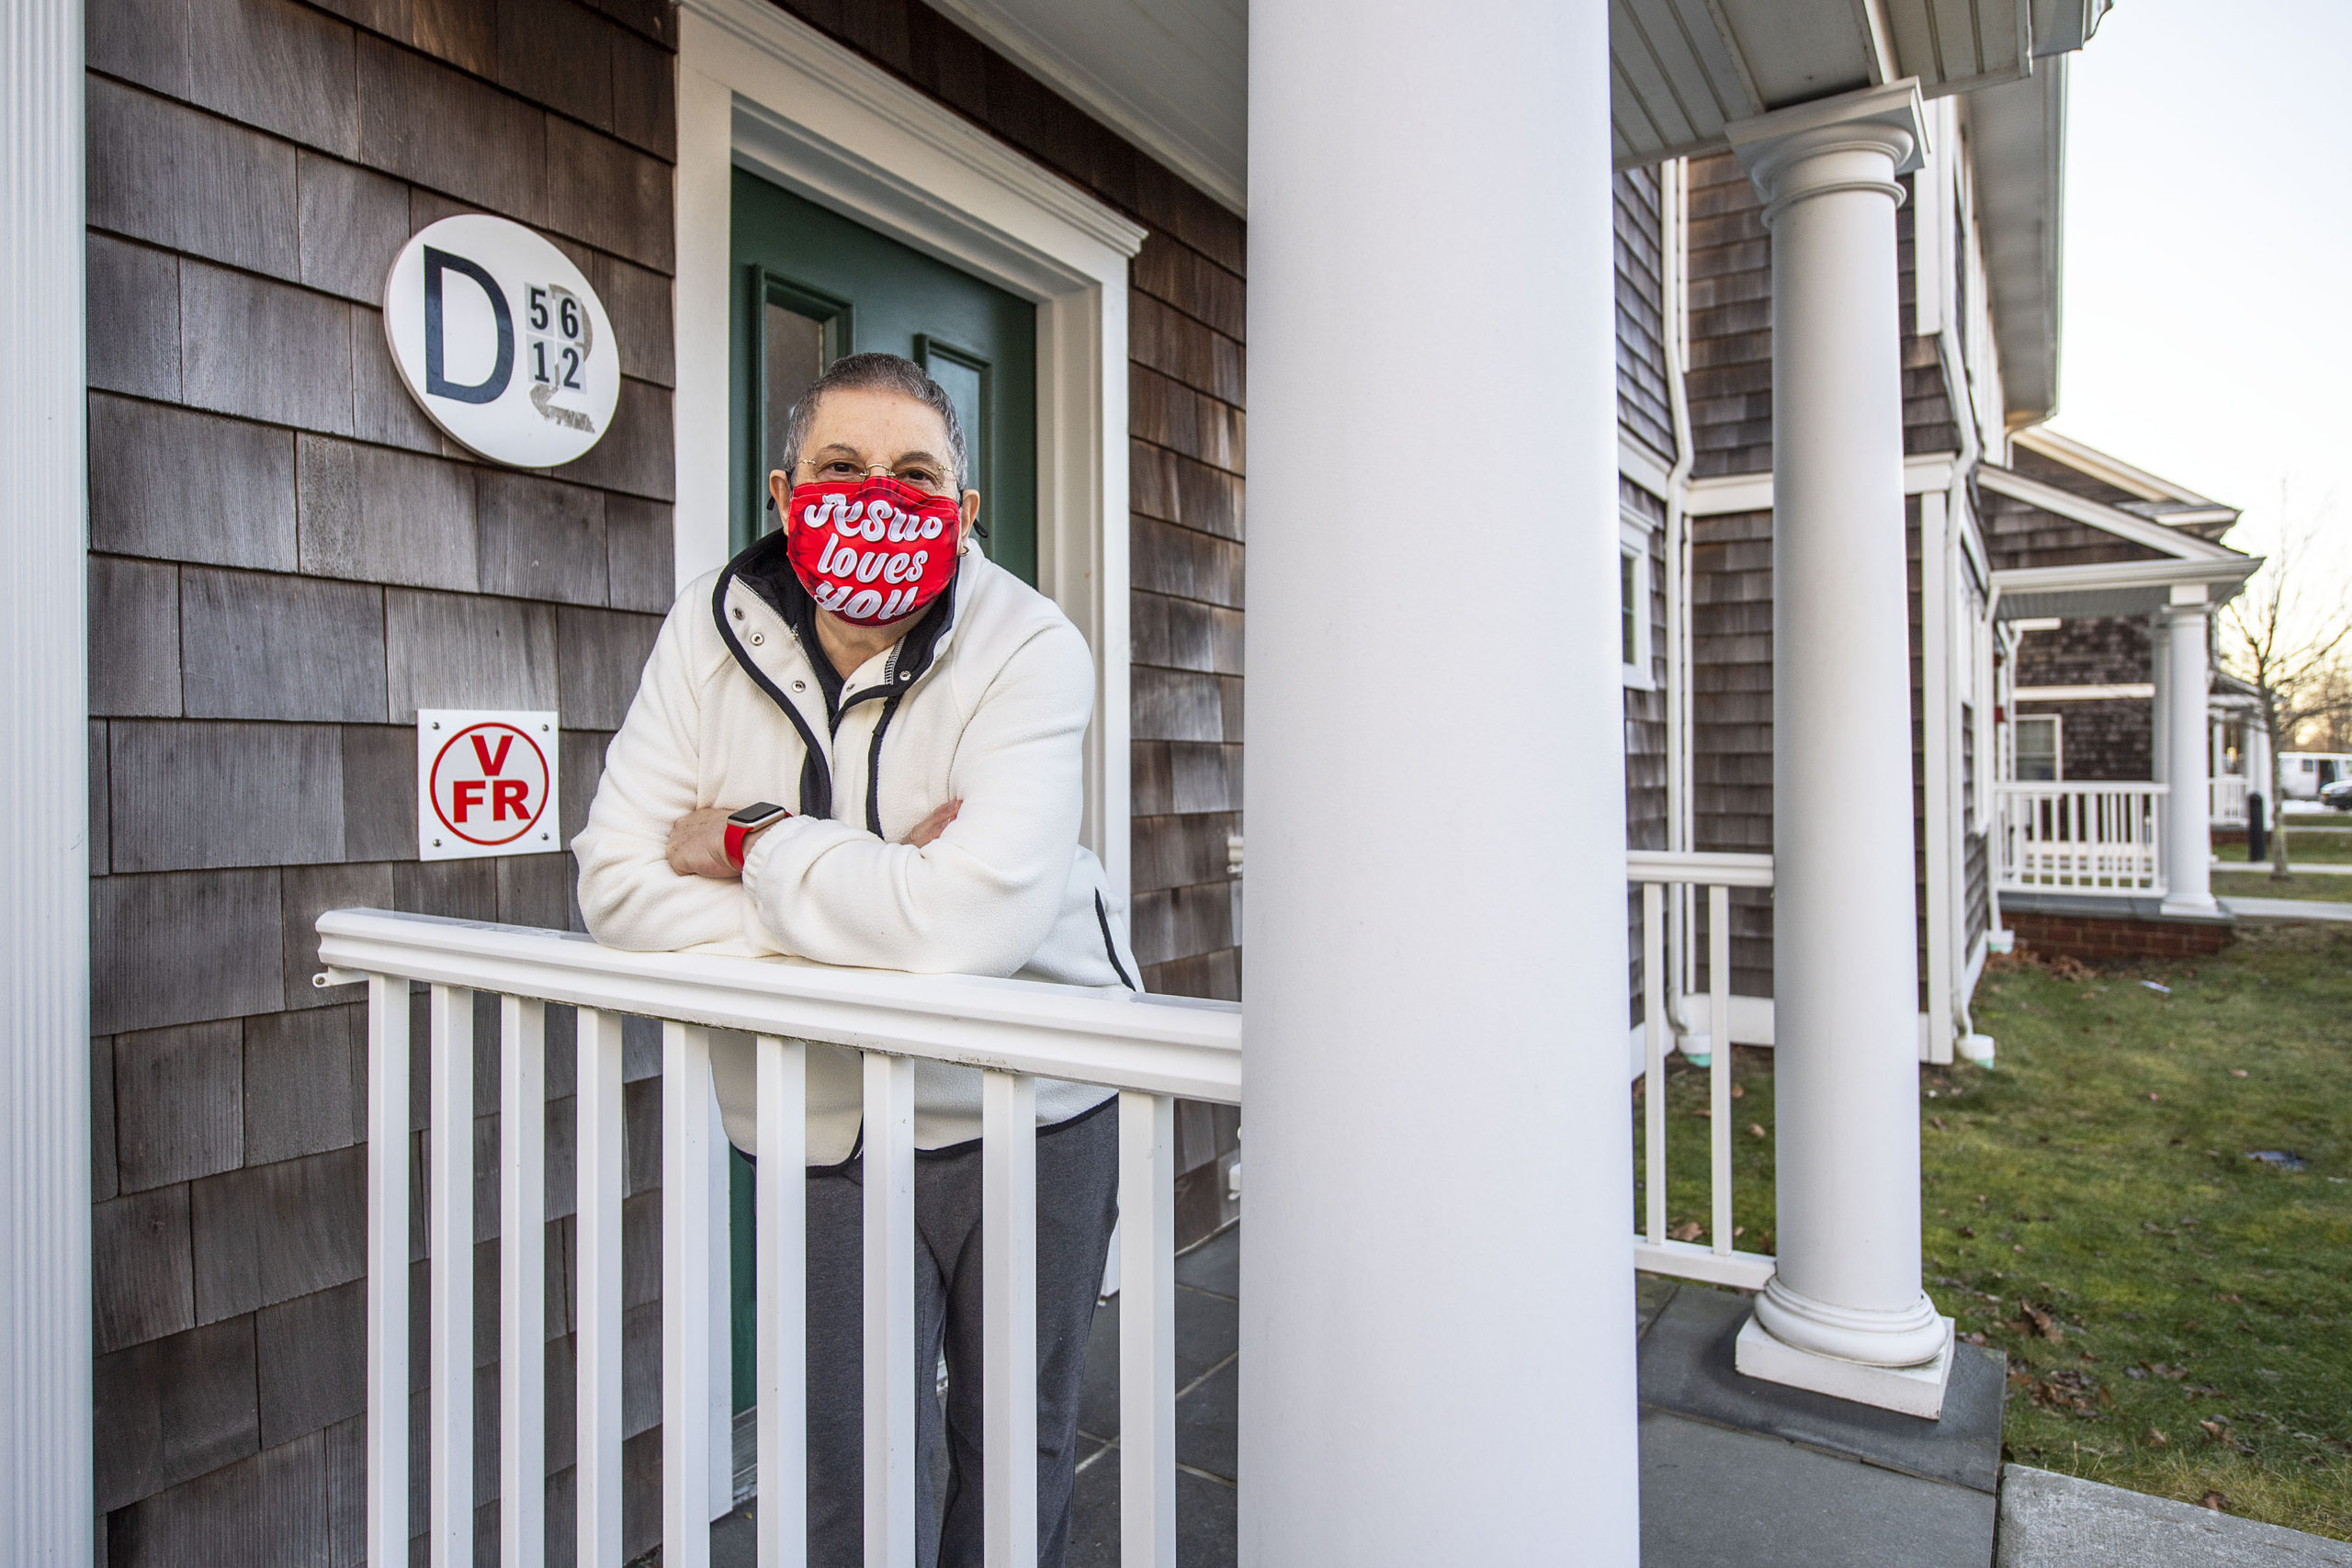 Herme Barbagallo lives at the St. Michael's senior housing complex in Amagansett and has not been able to get a vaccination appointment through the state portals.